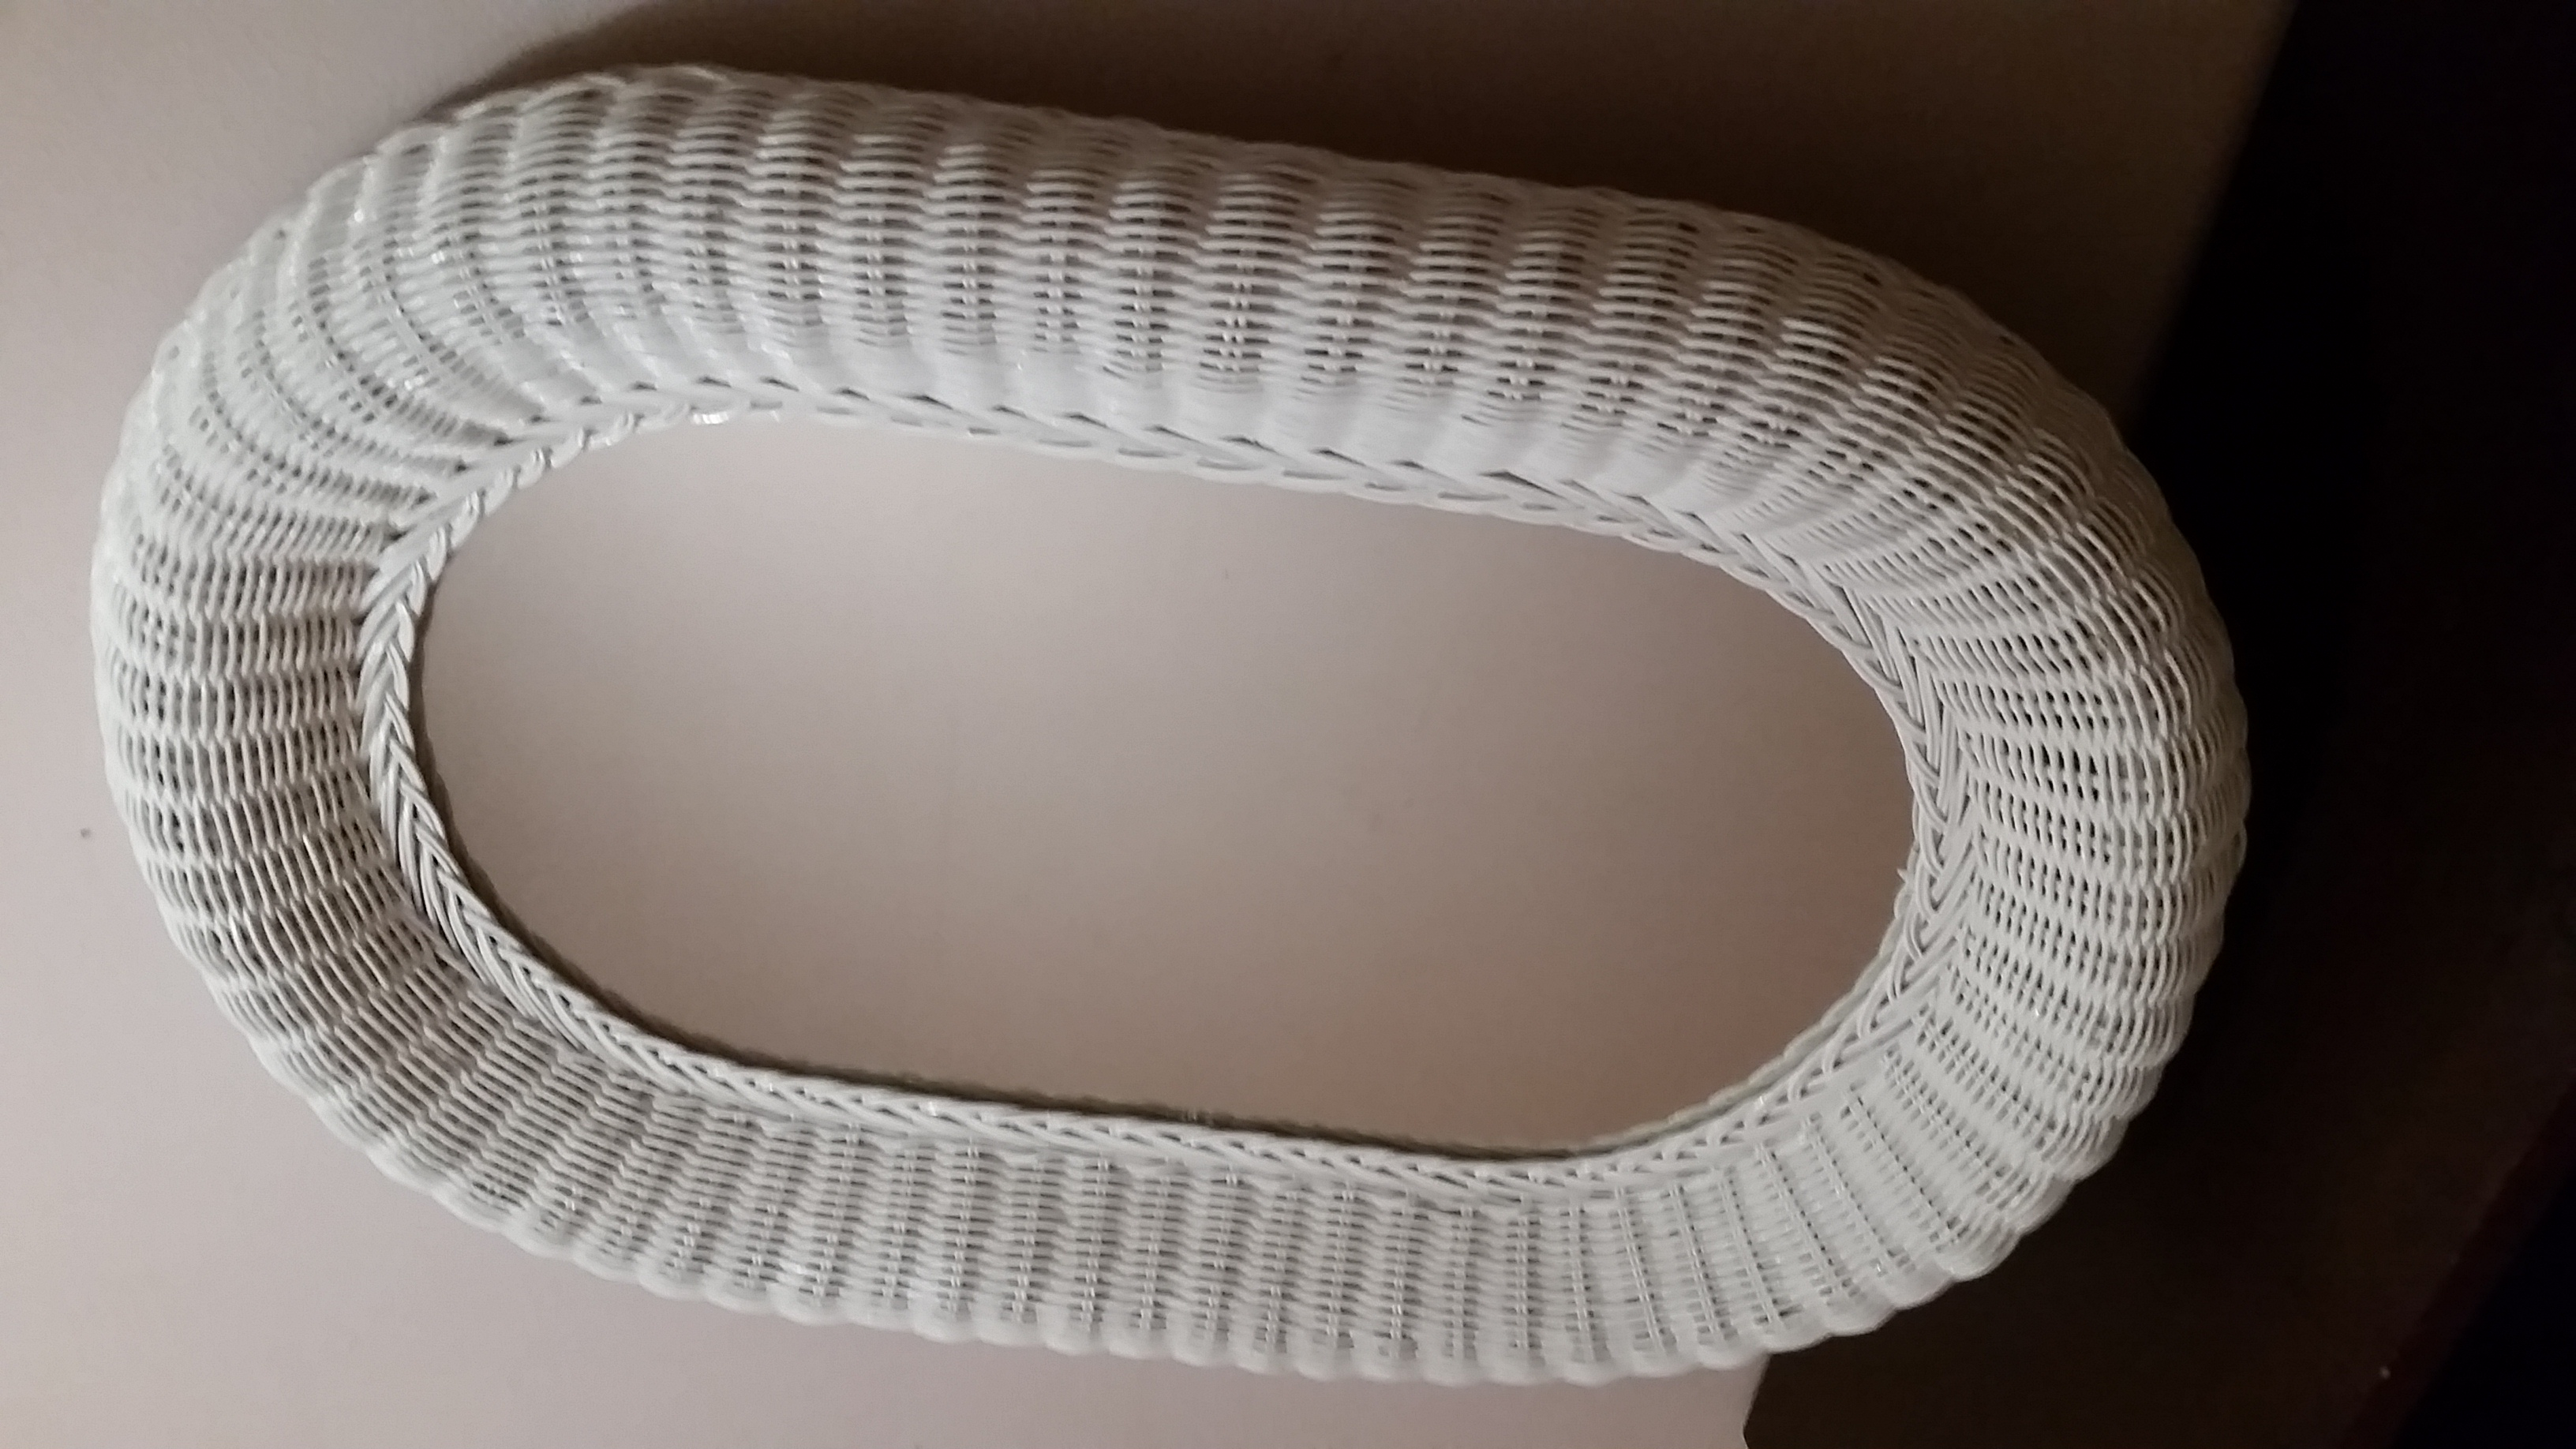 In Mint condition (one owner) Vintage 1960's white wicker LG OVAL mirror, price is $120.00 NO MORE & ABSOLUTELY WILL NOT BE LESS.